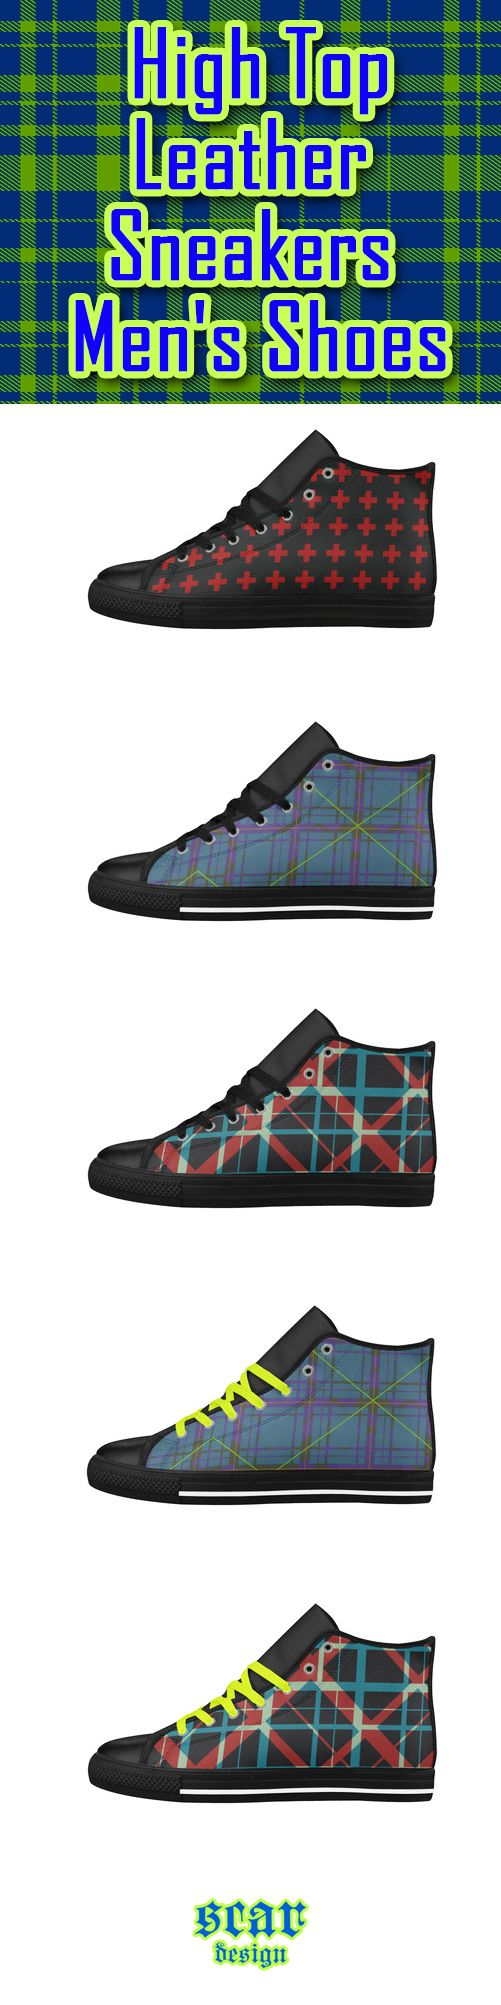 Men's Neon 80's Style High Top Leather Sneakers  Shoes  by Scar Design. Get discount gifts with the lucky draw. Unique Xmas Gifts for Him. #artsadd #scardesign #mensshoes #shows #80s #1980 #style #Neon #Hipster #Trendy #trend #jightopleathershoes  #bags #mensbag #menswallet #discount #giftsforhim #mengifts #Xmasgiftsforhim #fashion #christmasgifts #80sstyle #retro #NeonStyle #men #mensfashion #sneakers #leathershoes #menssneakers #hipstersneakers #hipsterhightops #hightops…